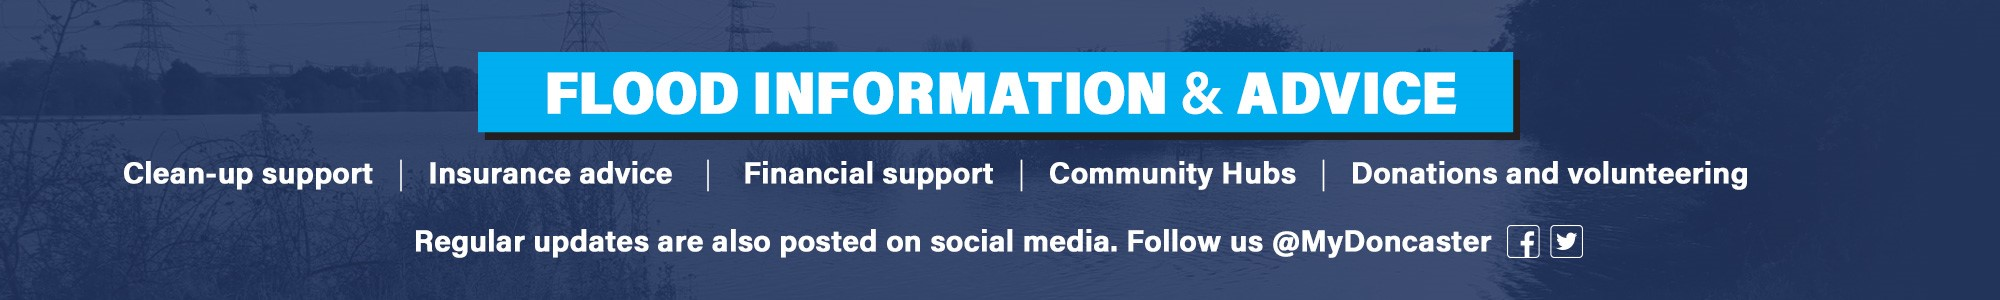 Flood information and advice including clean-up support, insurance advice, financial support, community hubs, donations and volunteering